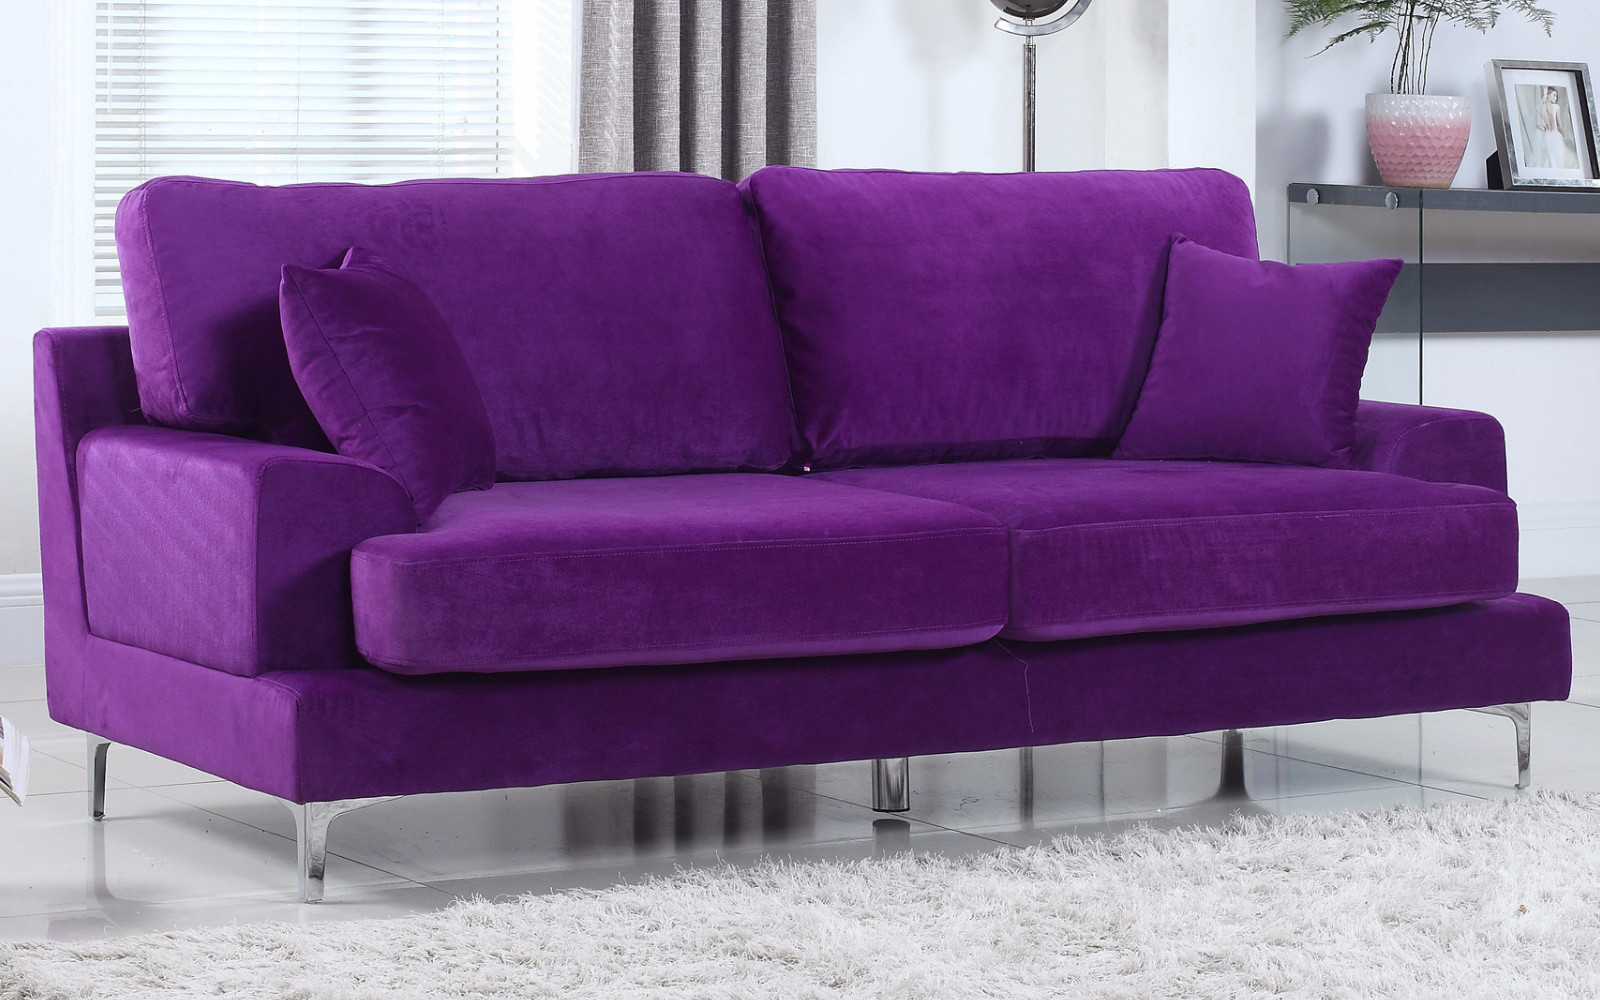 purple contemporary sofa zippered cushion covers ultra plush modern velvet living room